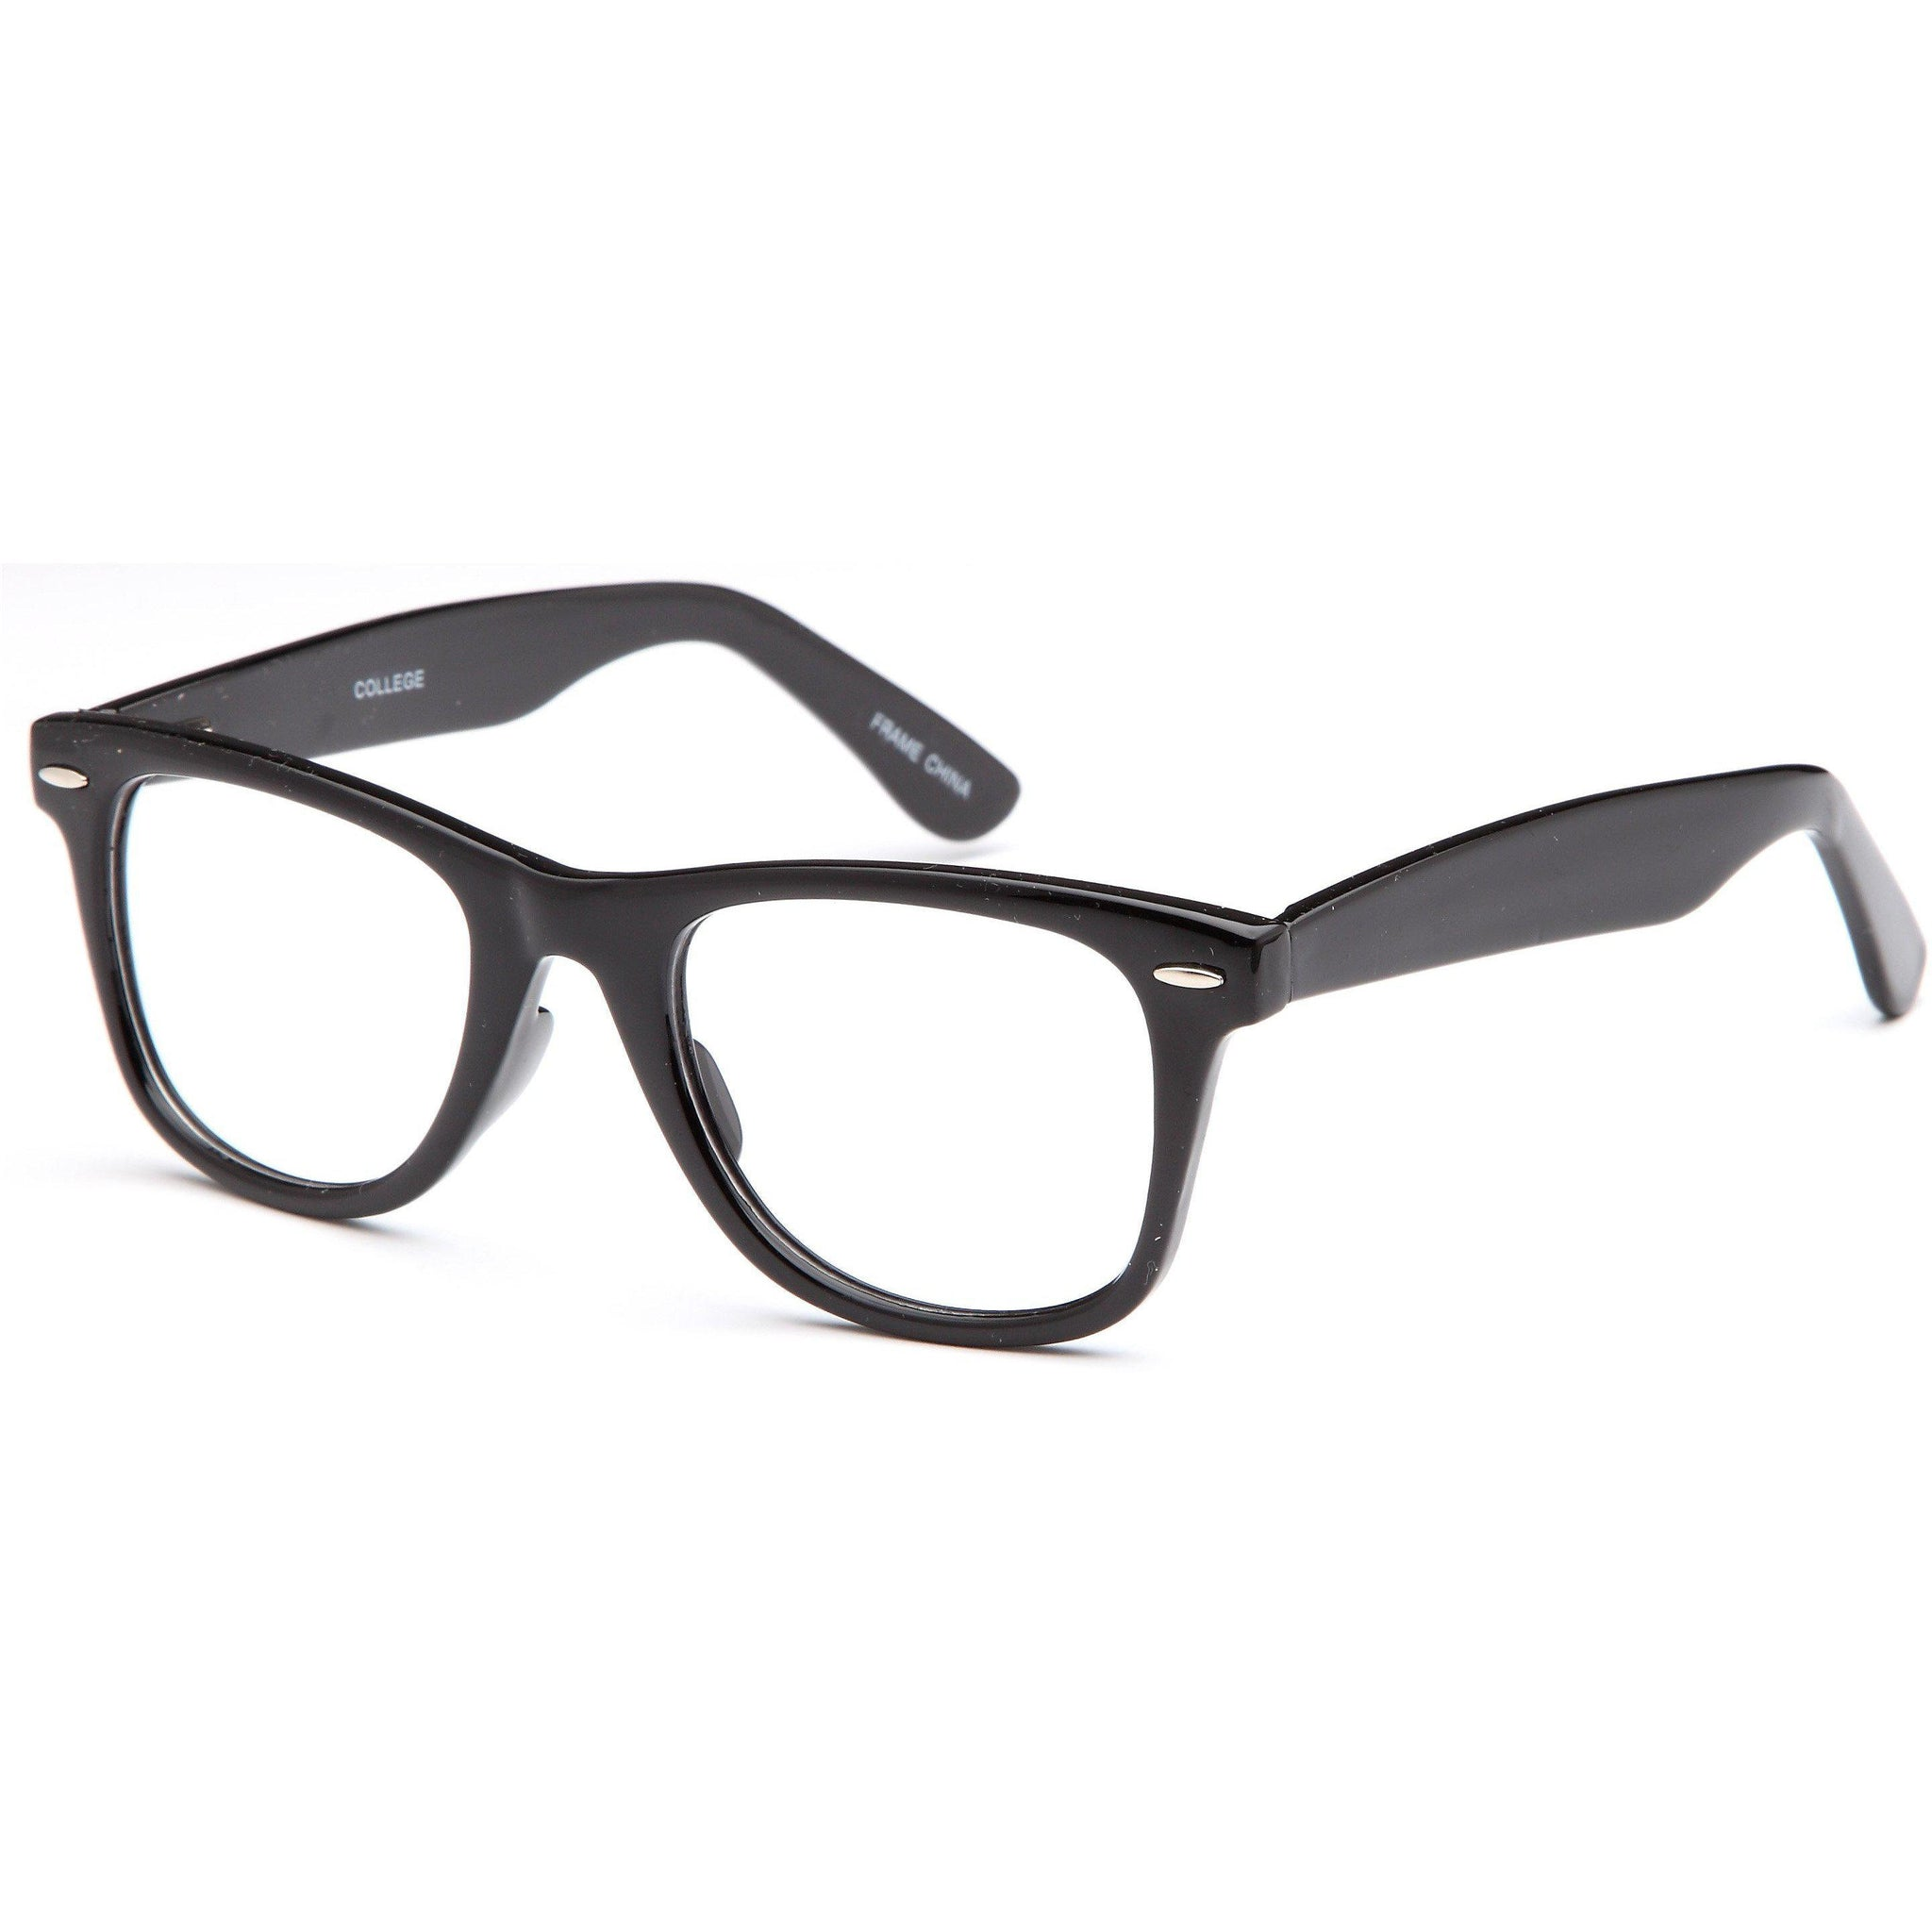 GEN Y Prescription Glasses COLLEGE Eyeglasses Frame